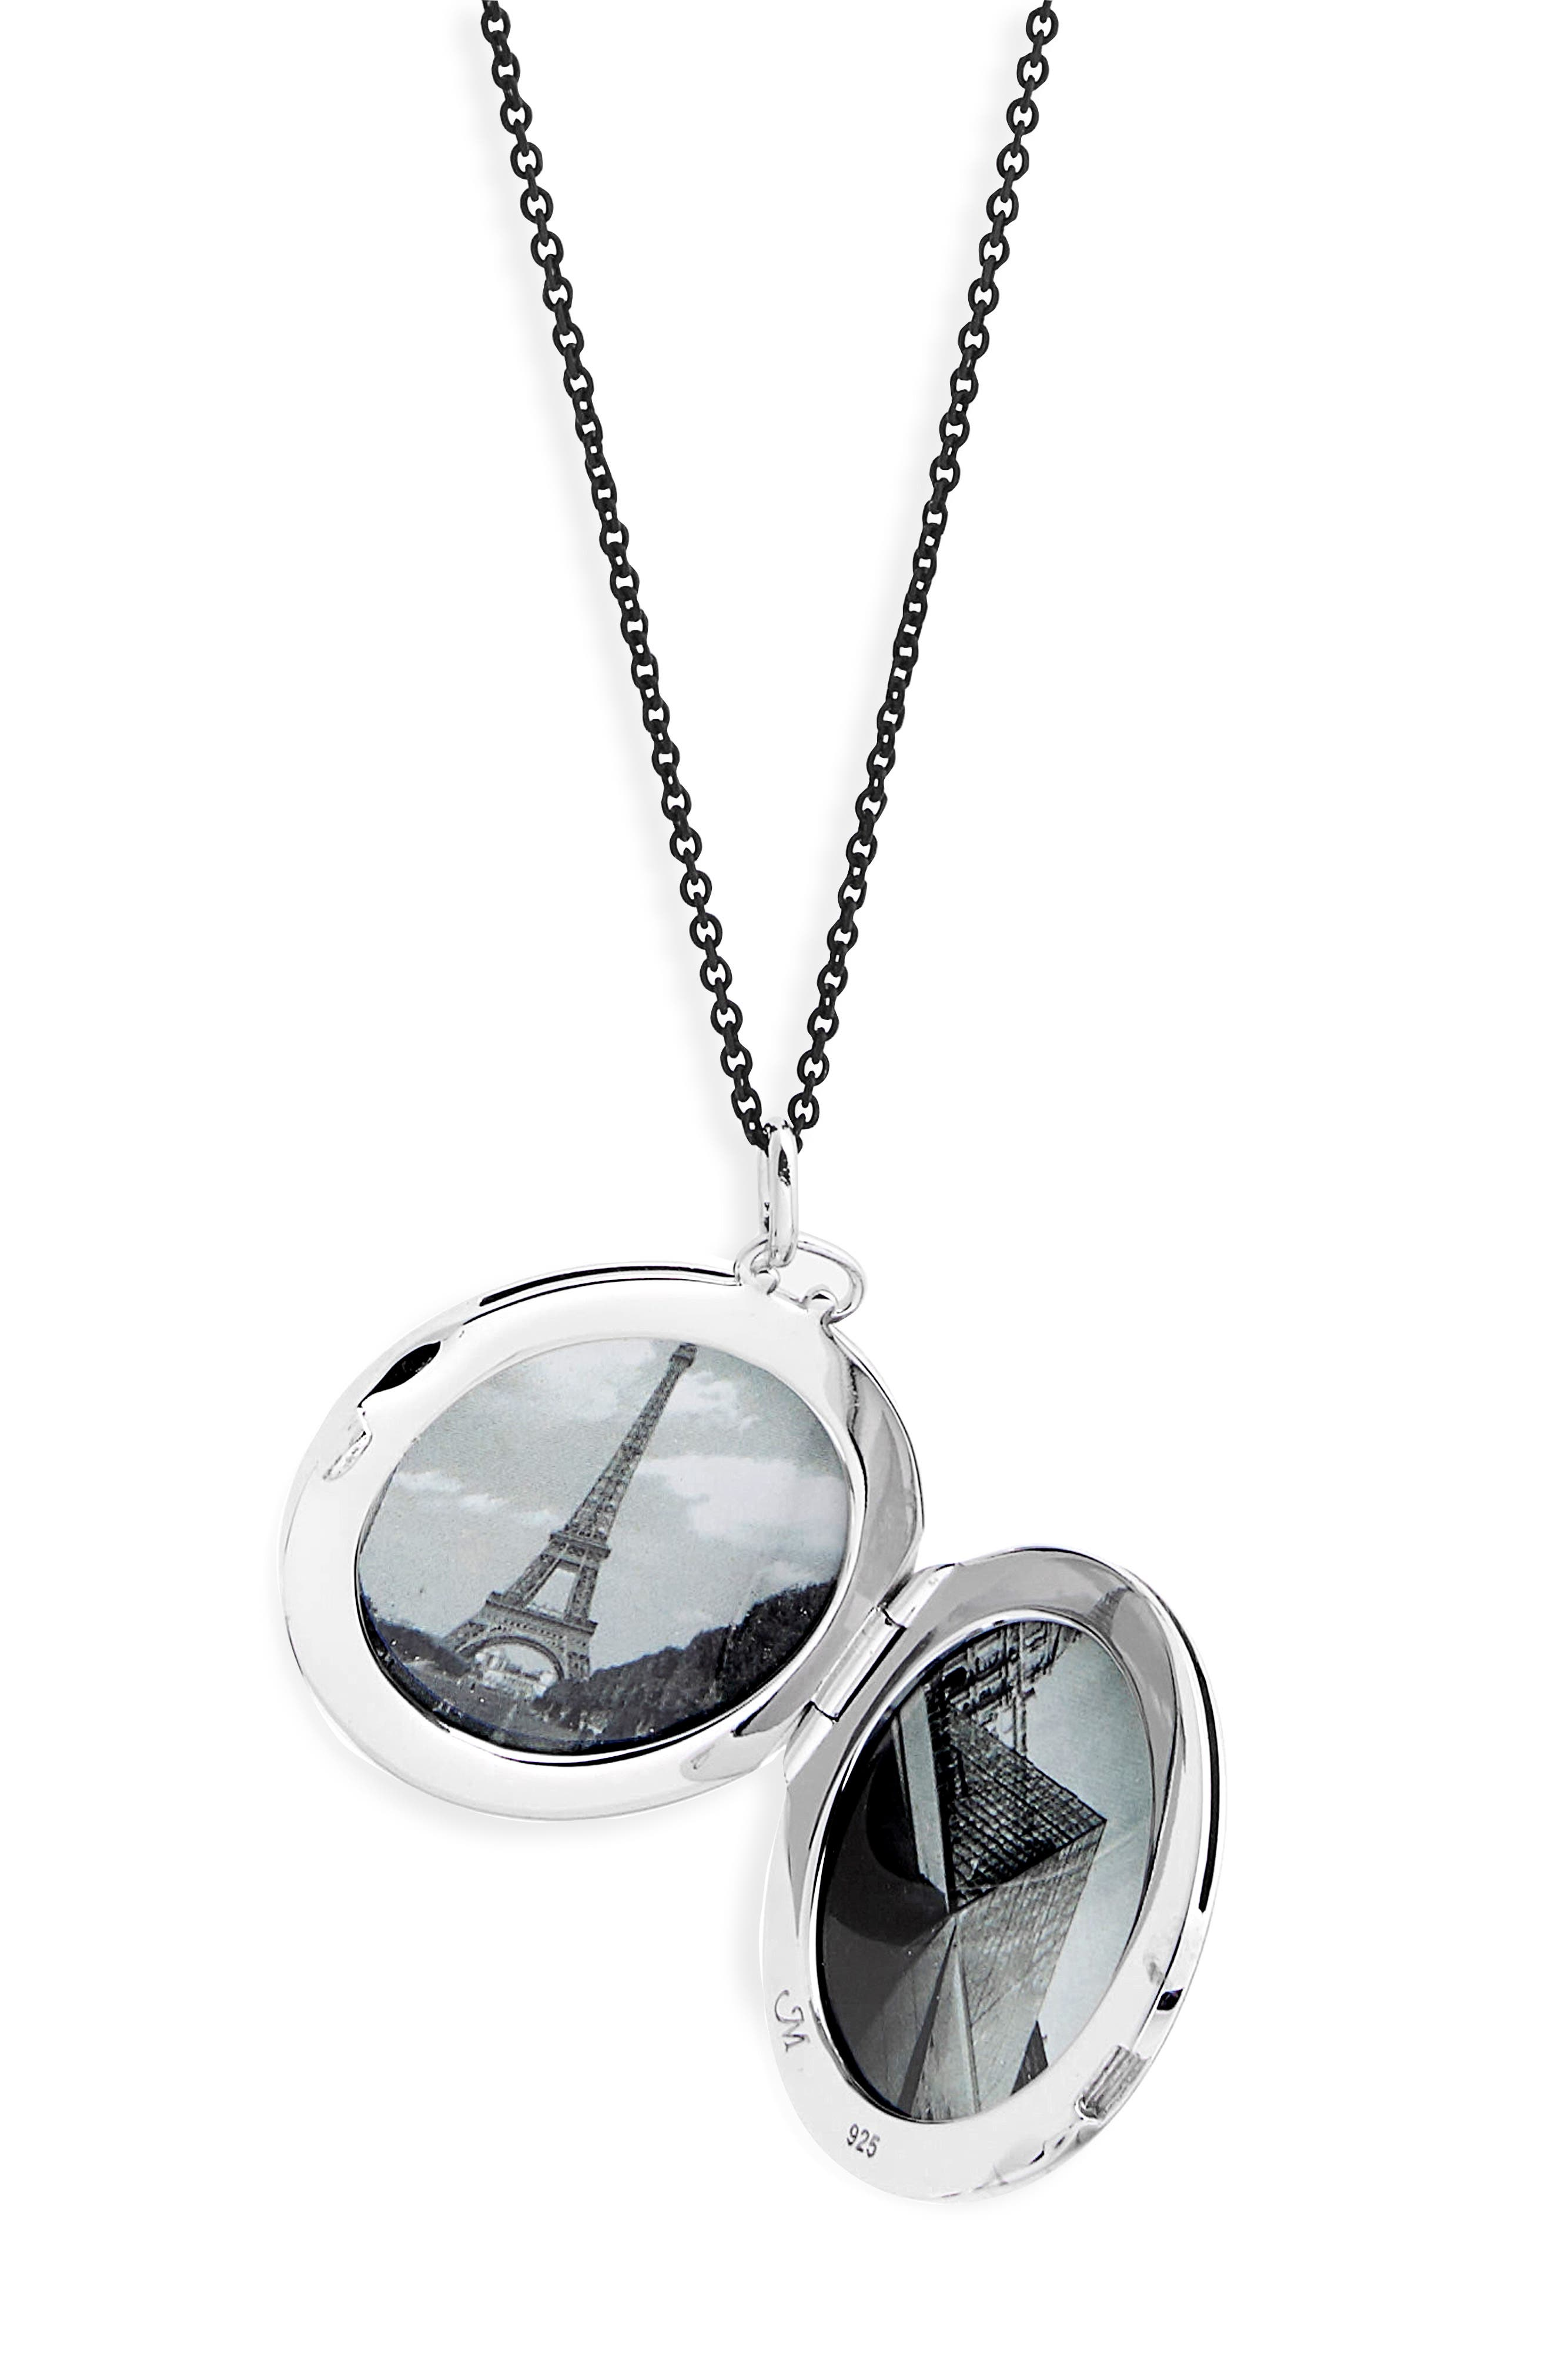 Round Dome Locket Necklace,                             Alternate thumbnail 4, color,                             Sterling Silver/ Black Steel